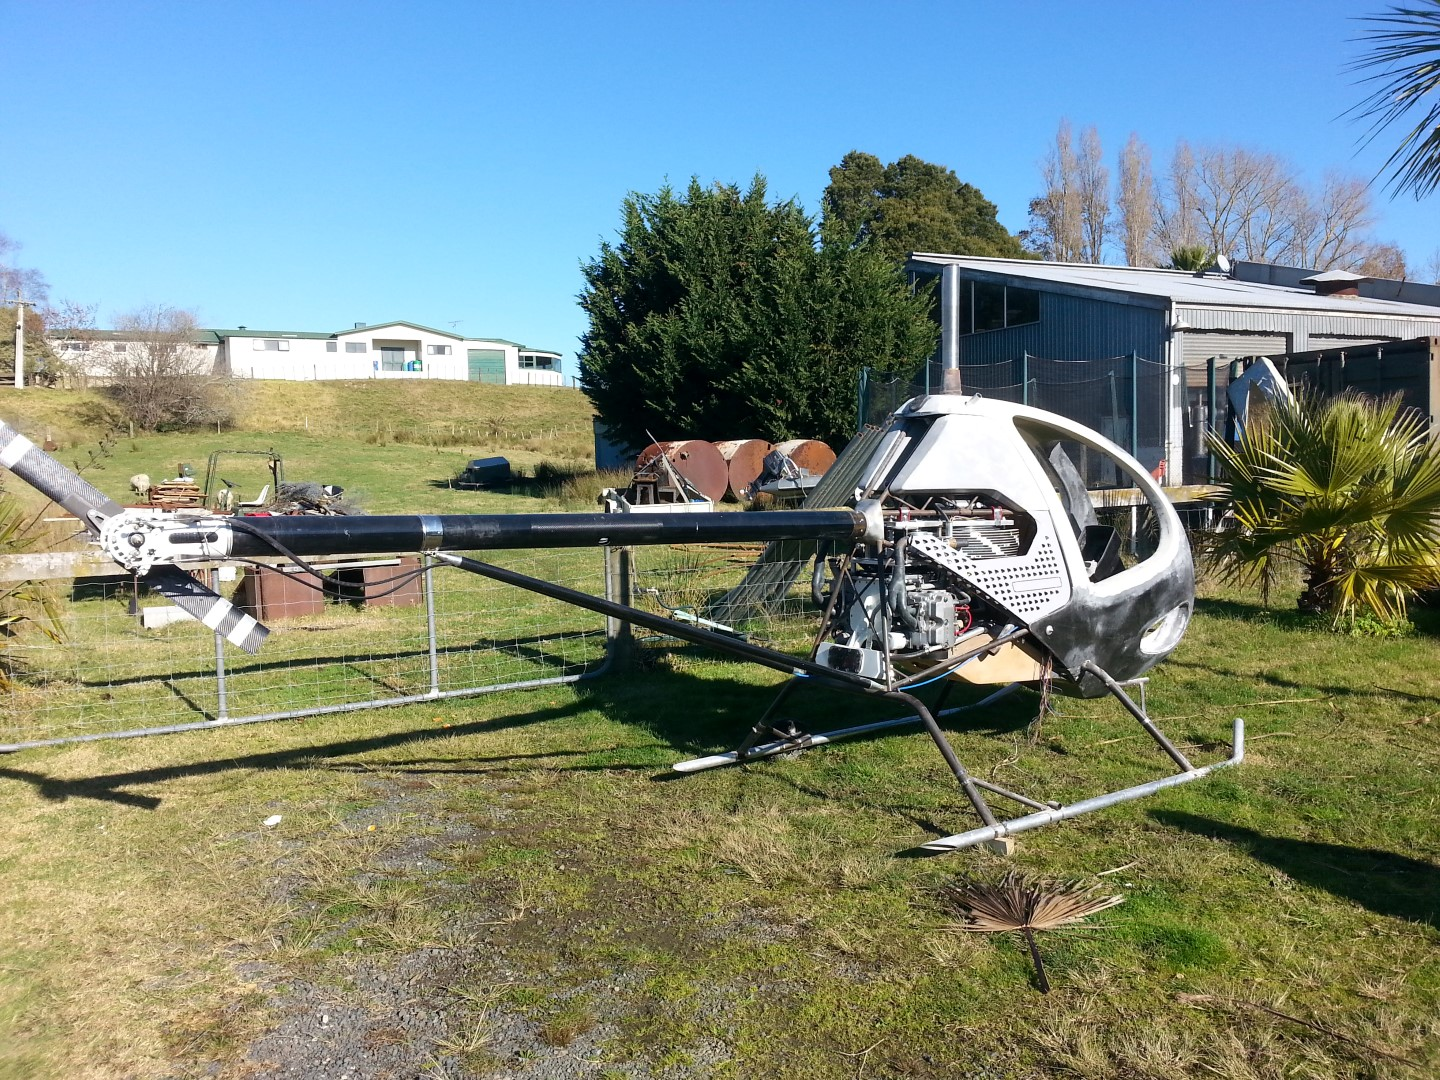 <h5>Blowfly helicopter's first time outside</h5><p>Blowfly helicopter's first time outside</p>